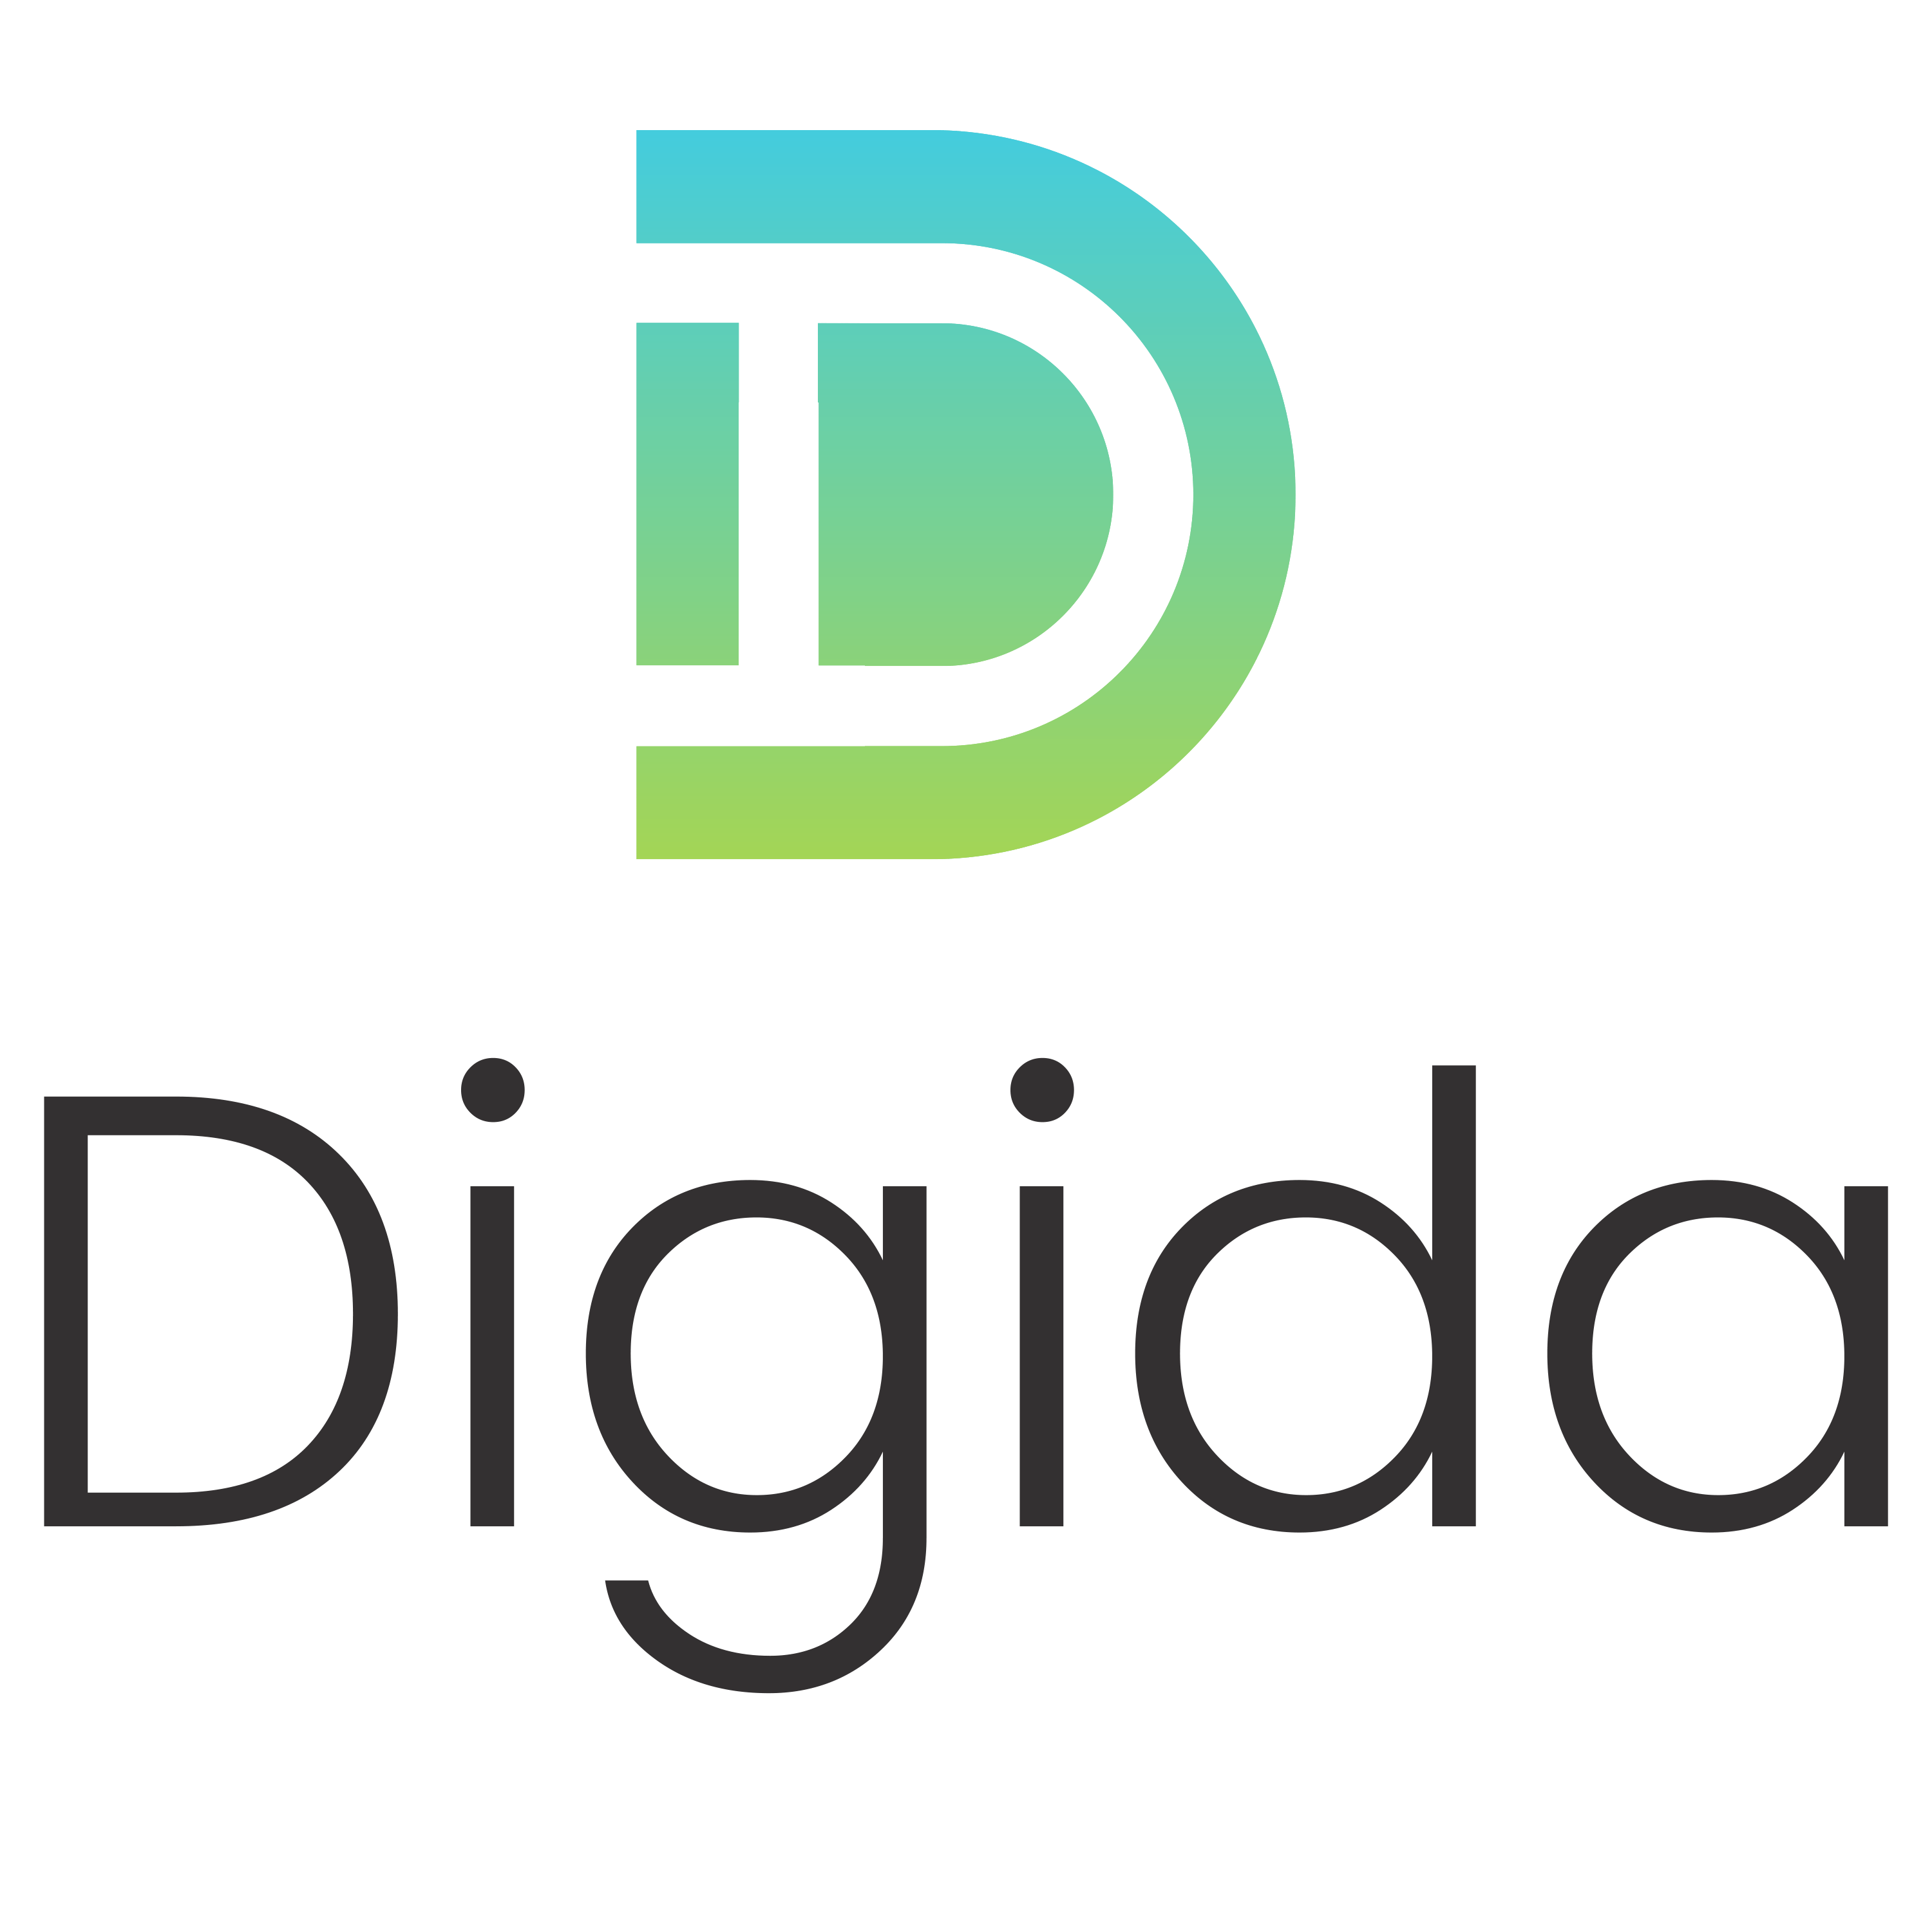 Digida Marketing